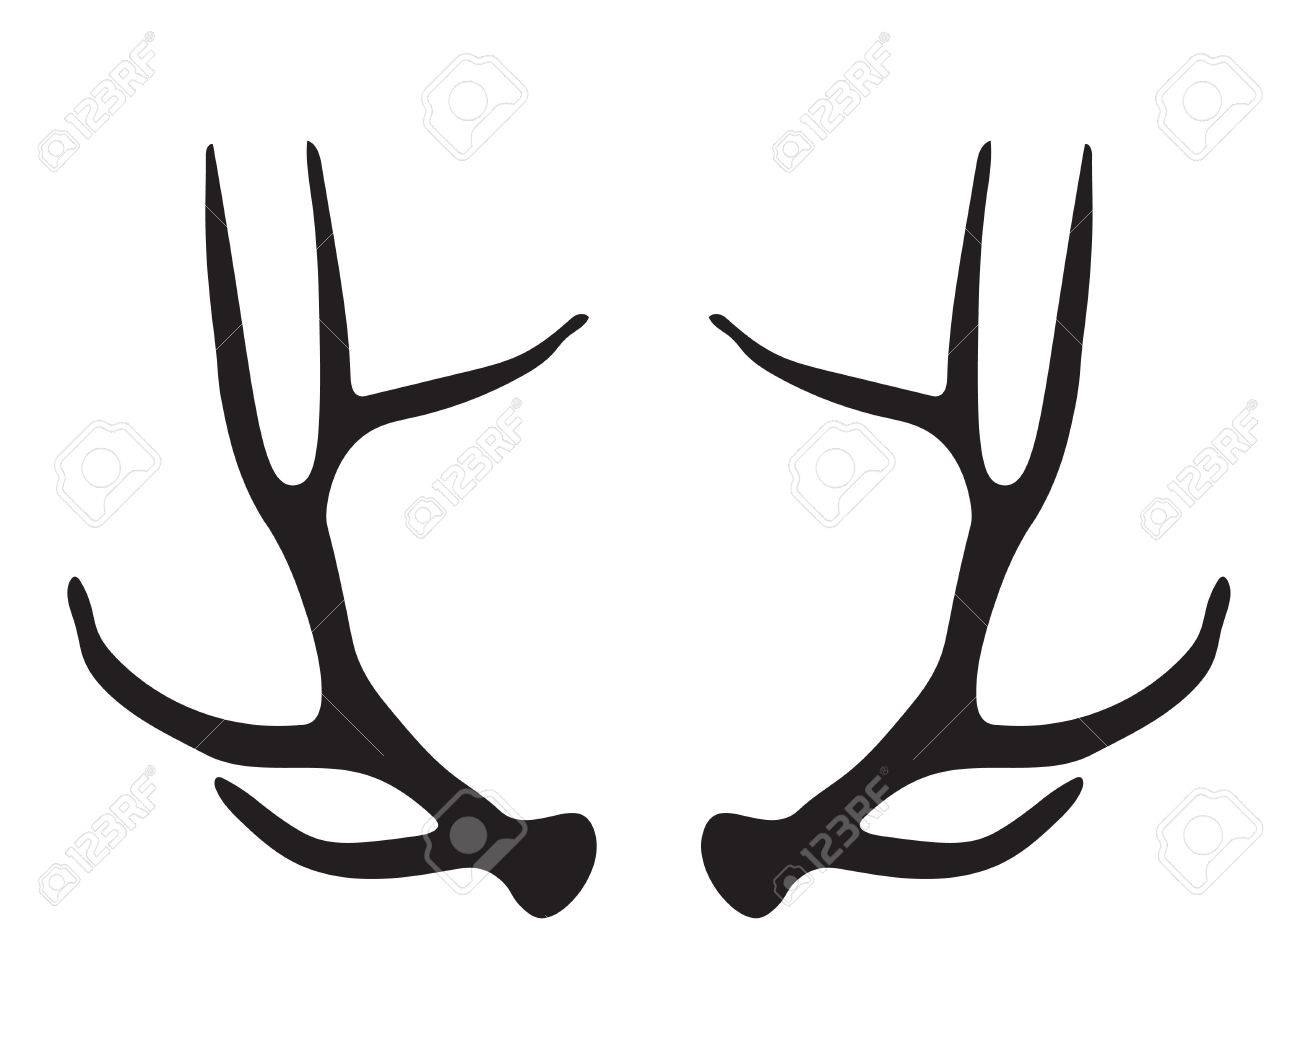 black silhouette of deer antlers vector illustration royalty free rh 123rf com deer antler vector clipart free deer antler vector art